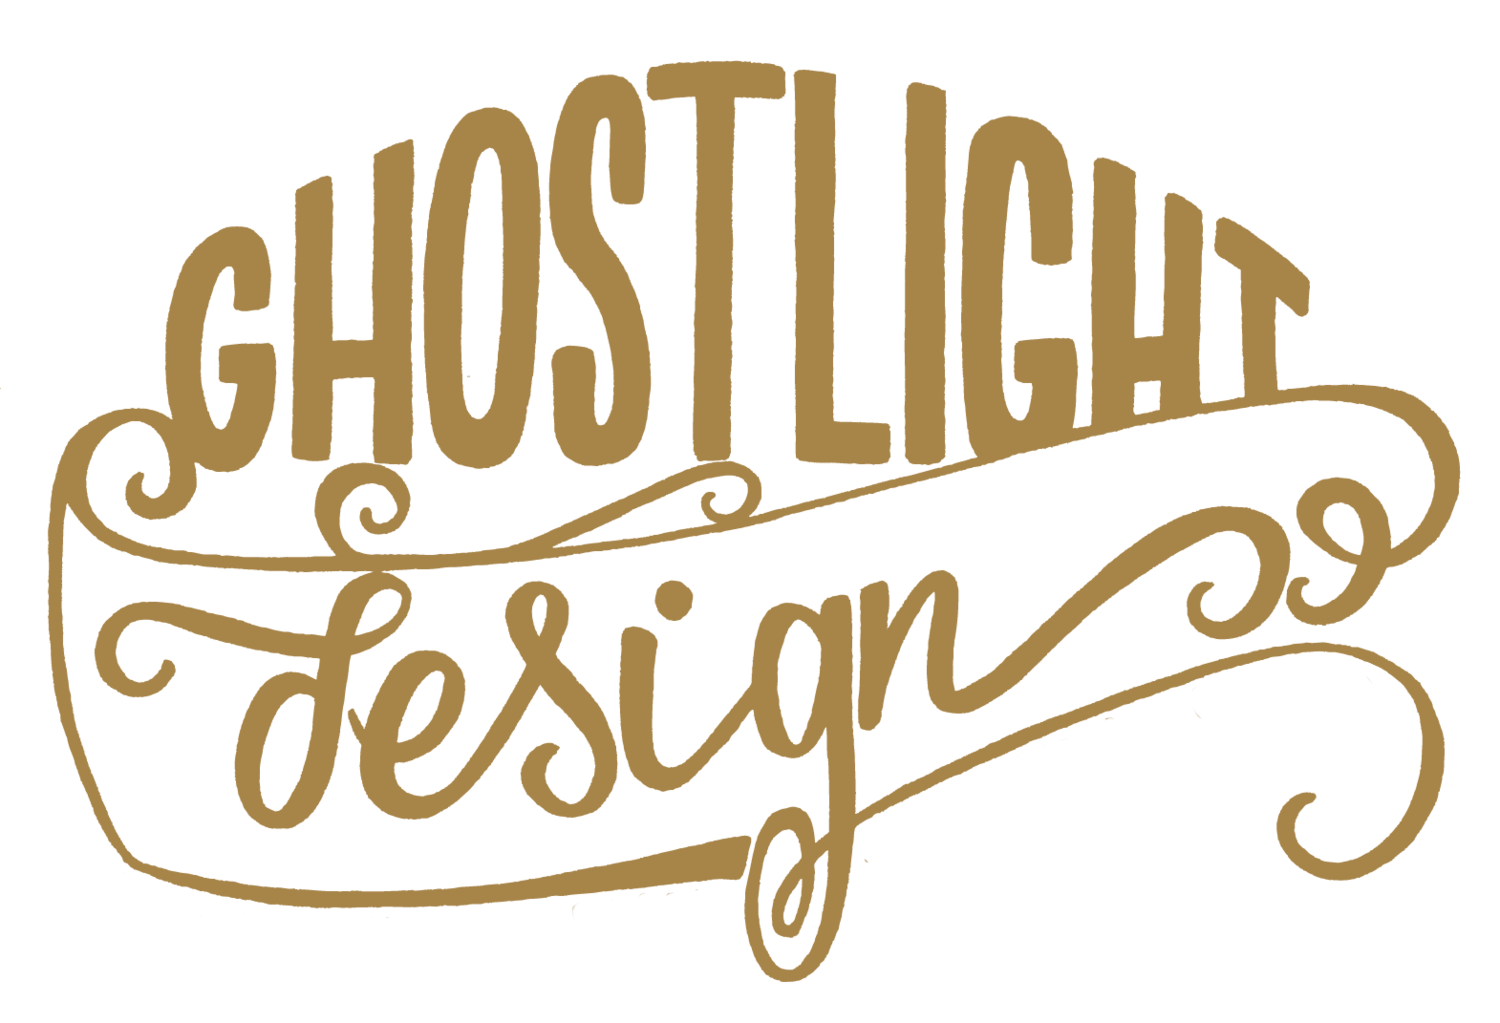 Ghostlight Design